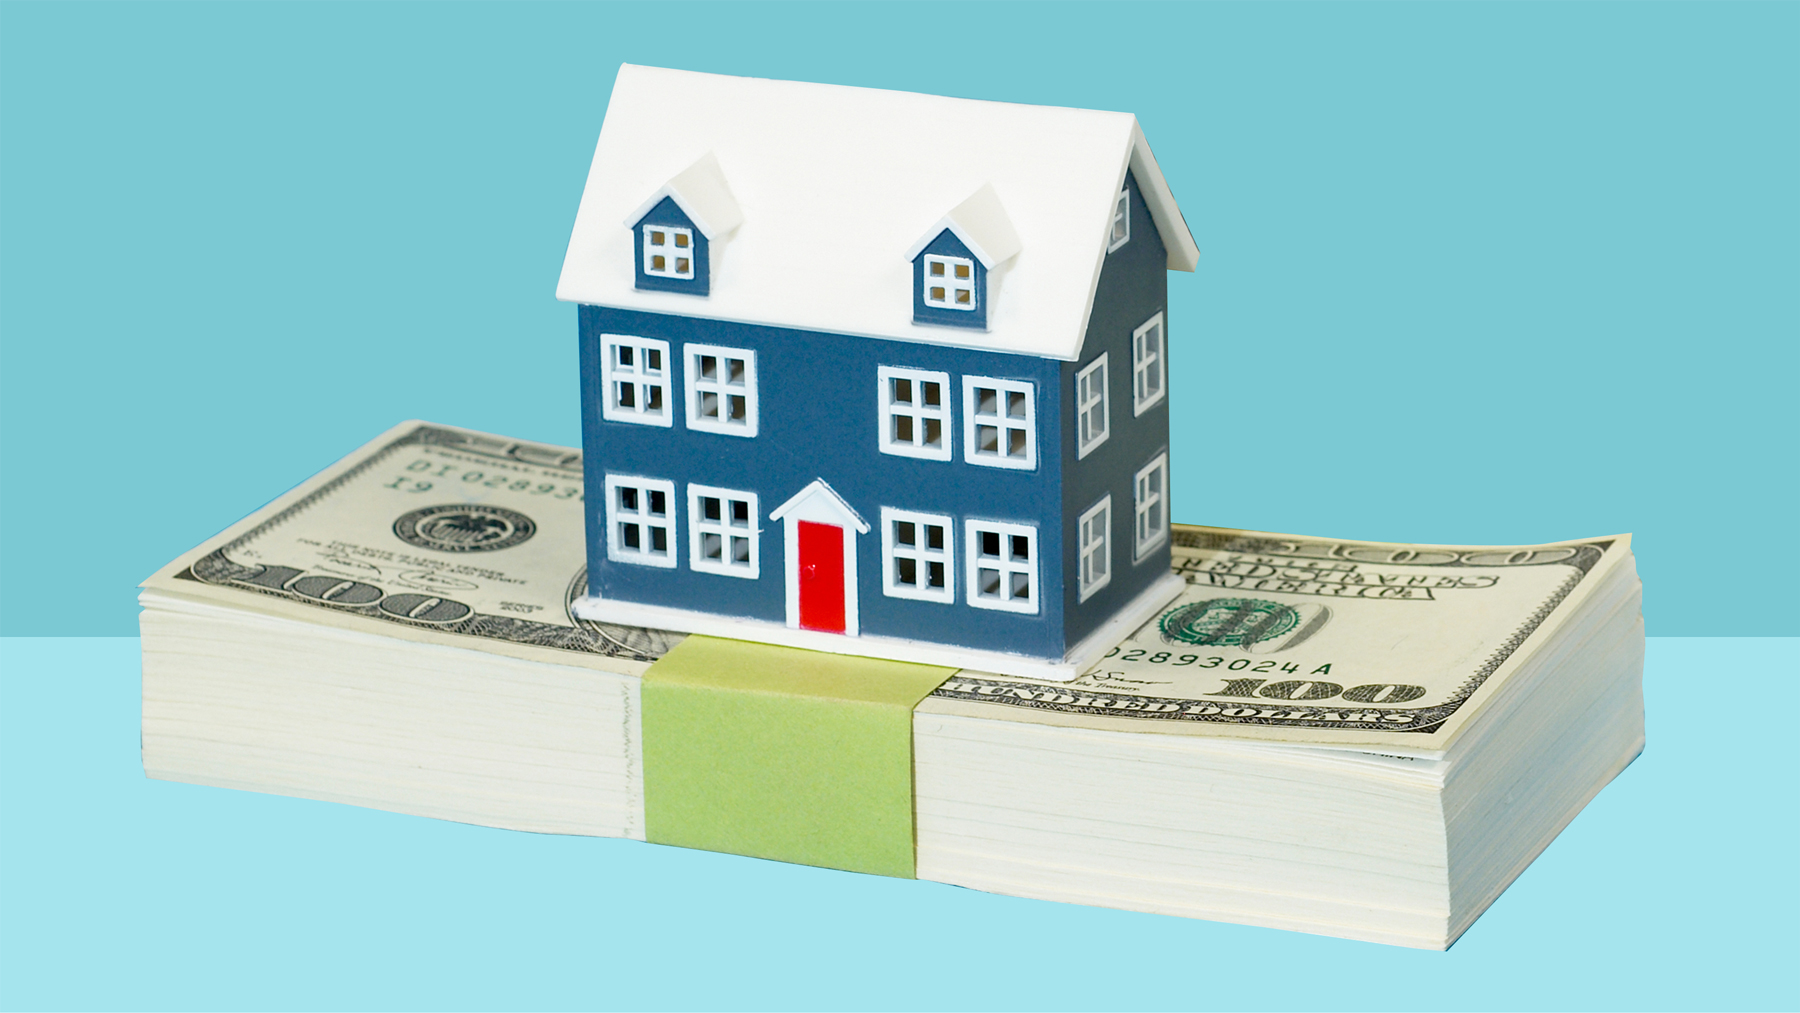 illustration of a house on top of a stack of money: how to use your tax refund wisely